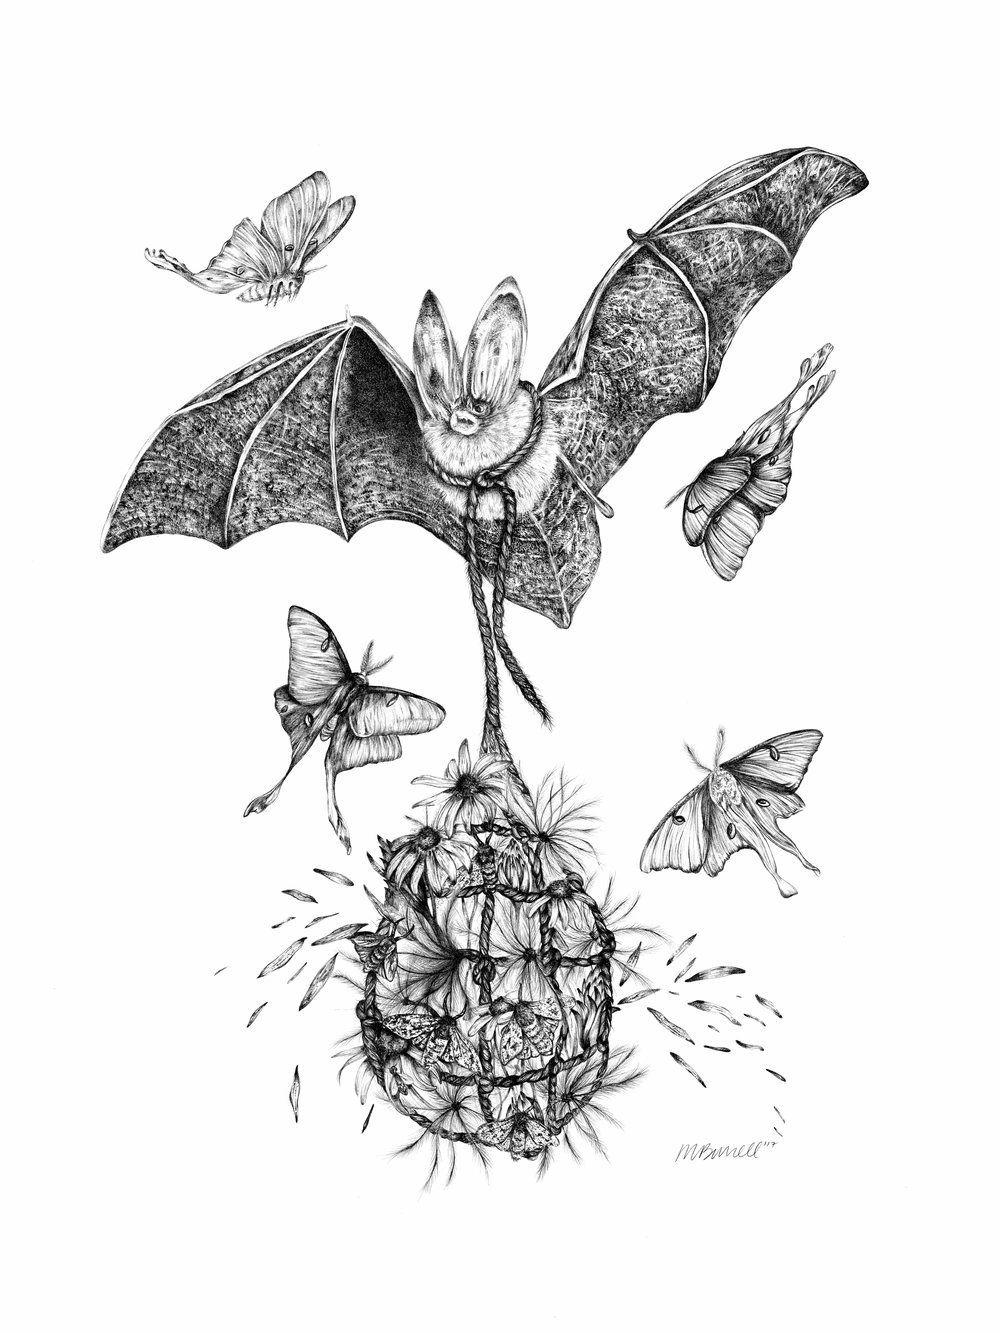 """""""El- Bay"""" is a graphite original completed in 2017. This work featured a Virginia Big-Eared Bat that has an endangered status. Surrounding El-Bay are luna moths and he carries a sack of flowers and seeds. This is the last segment in the Migration series. Check out the Special Edition Digital color print as well!  Materials: graphite pencil, paper  Size: 24"""" x 18"""""""